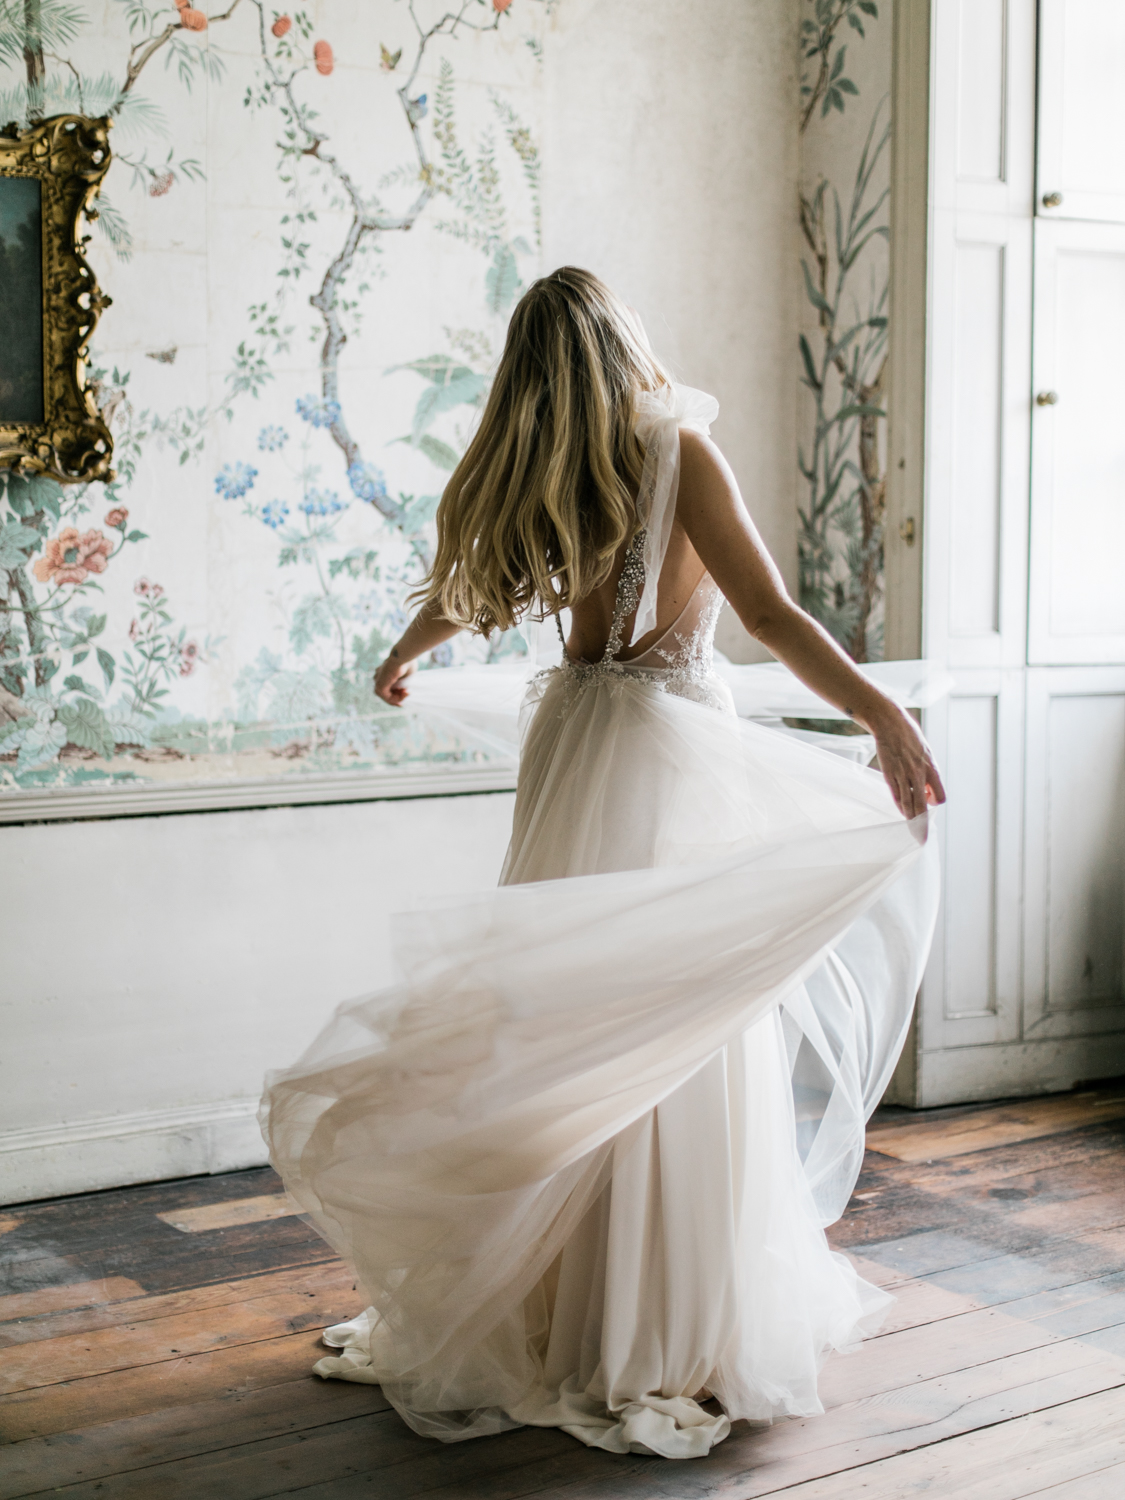 Romantic, elegant wedding photography featuring Inbal Dror wedding dress at St Giles House.